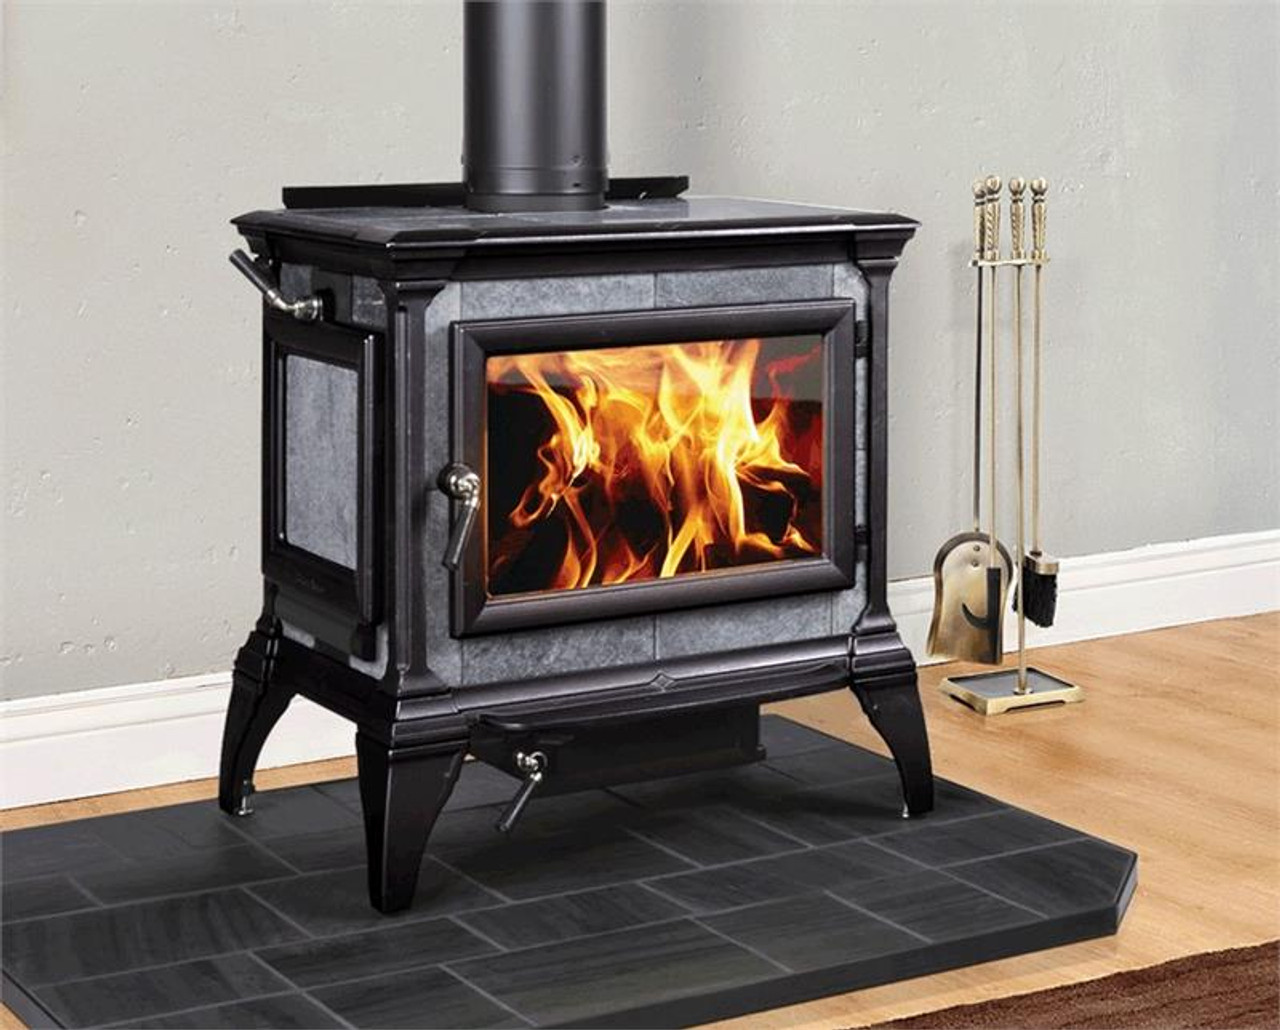 Hearthstone Heritage 8024 Wood Stove in Blue Black